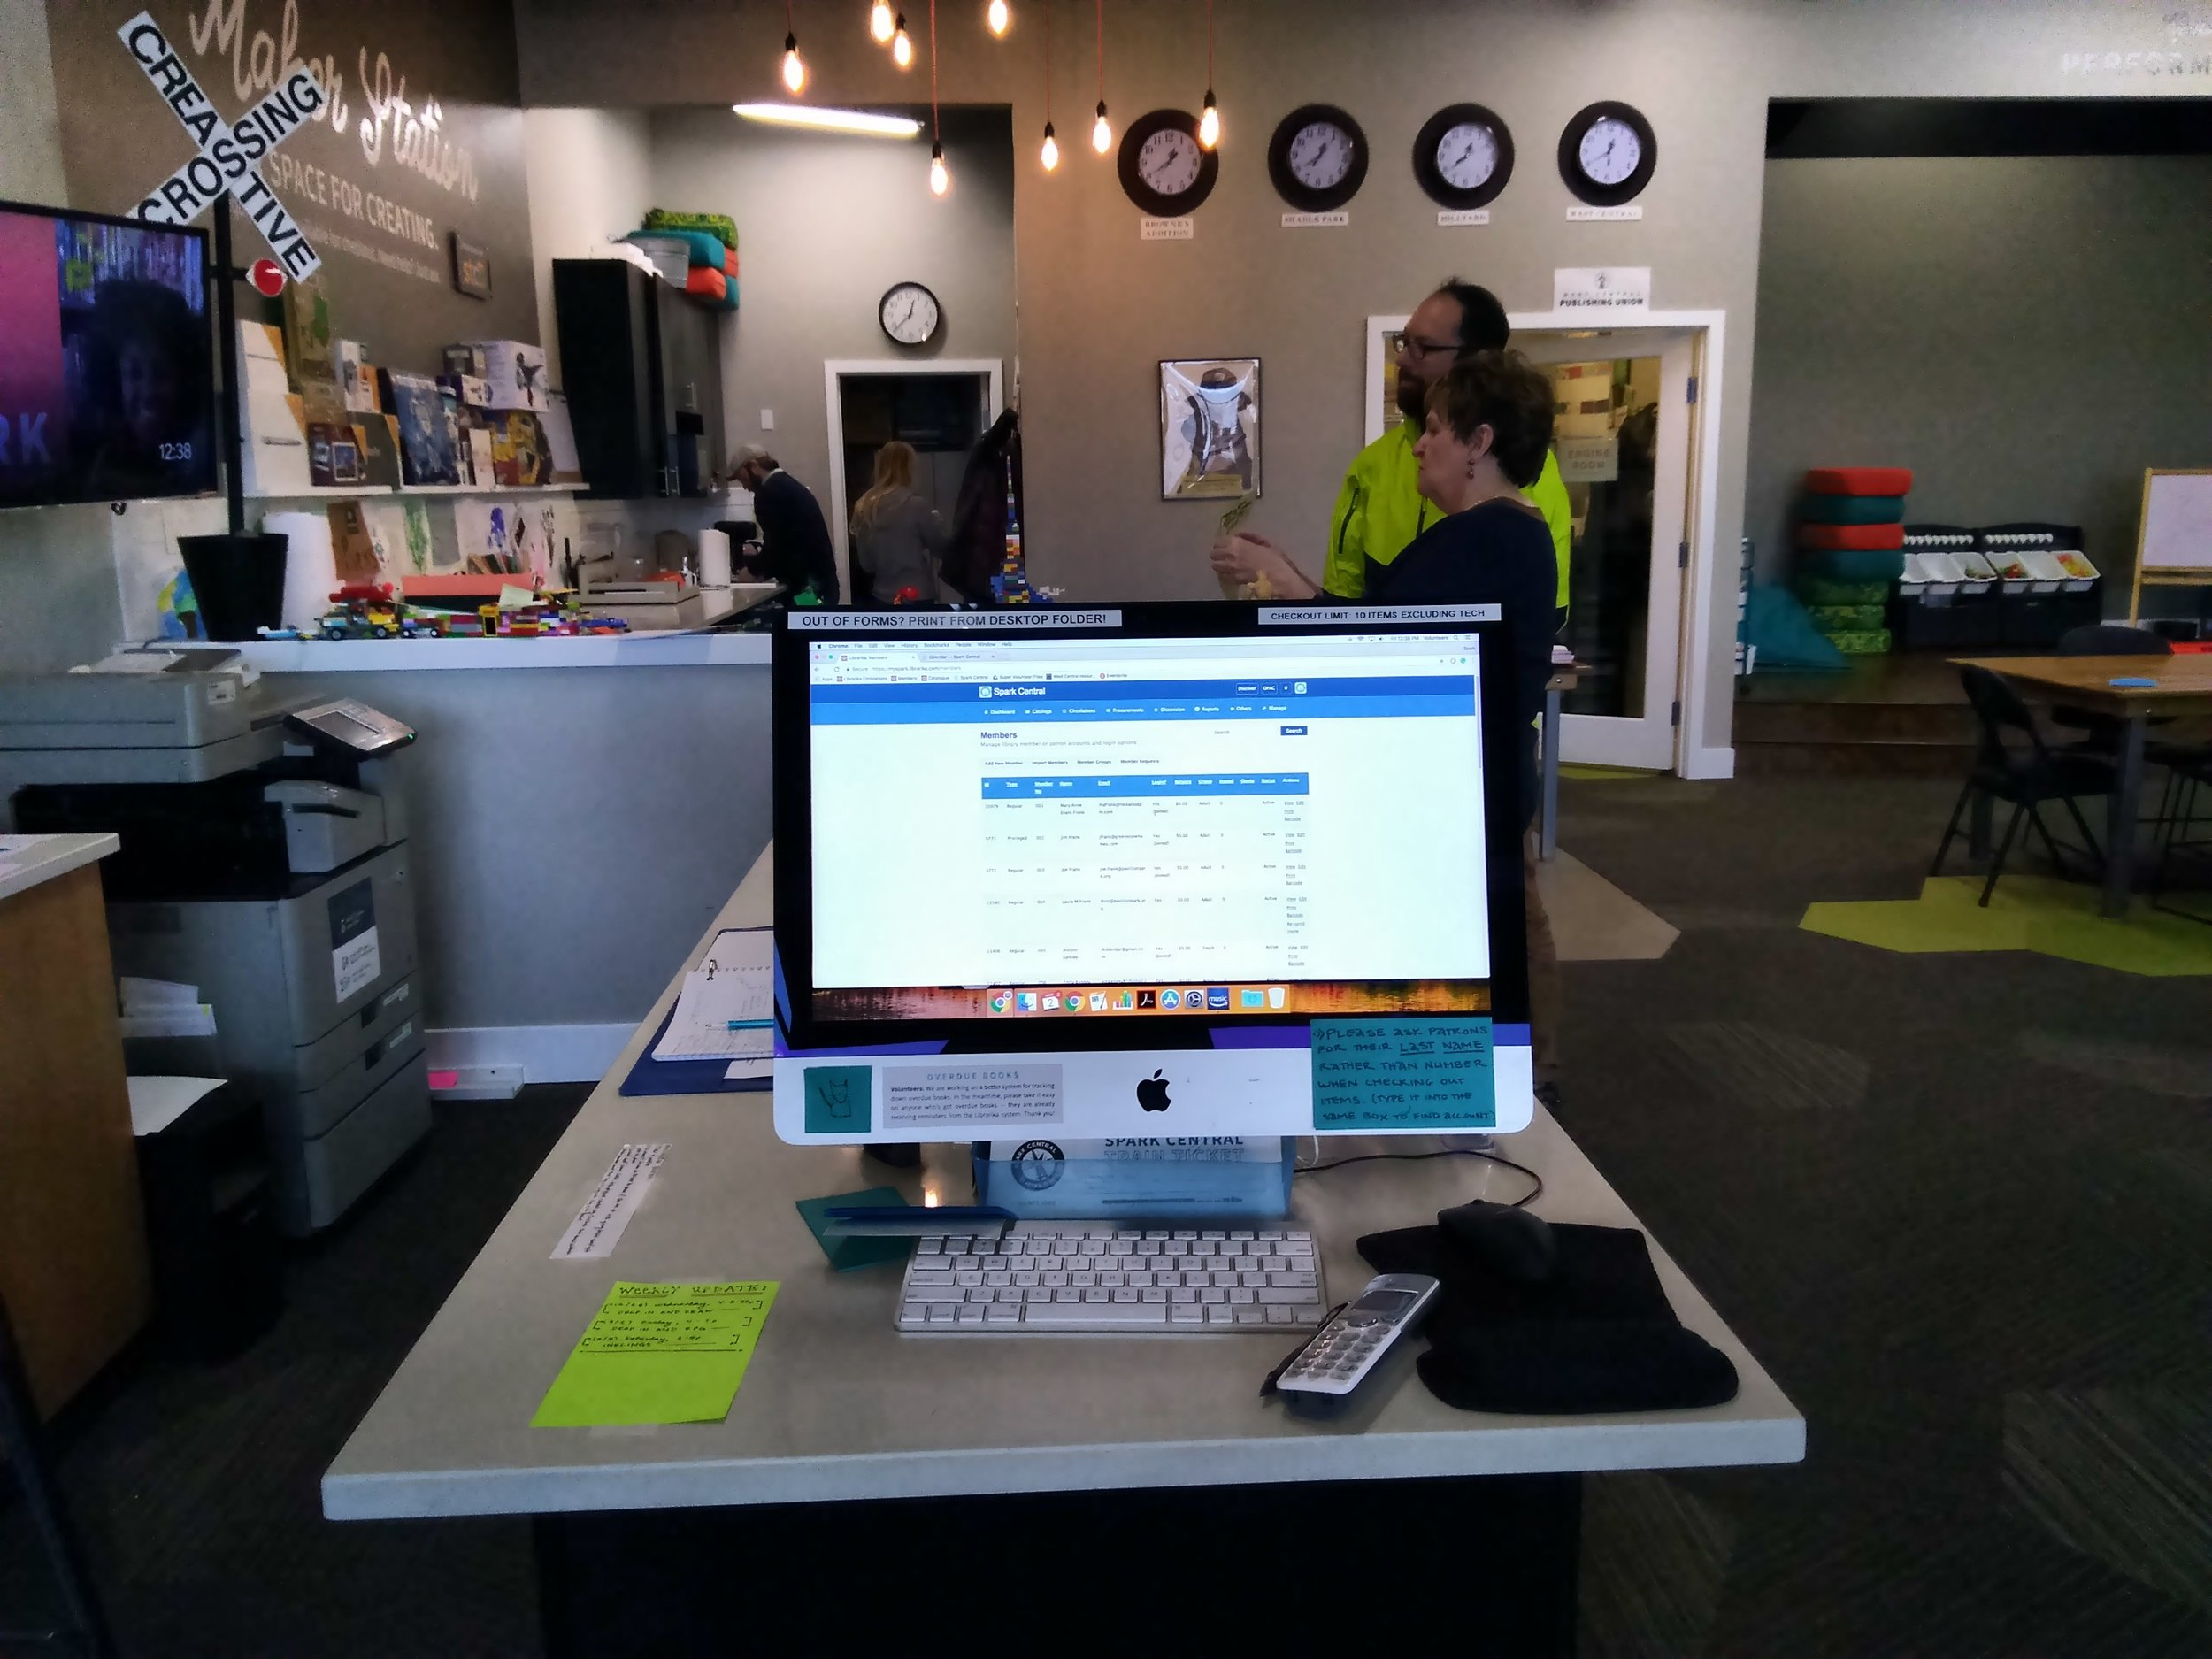 Library Terminal - The Library terminal is located at the end of the front counter. It is for volunteer use only. Membership forms and staff business cards are located in holders on top of the front counter and directly behind the terminal.